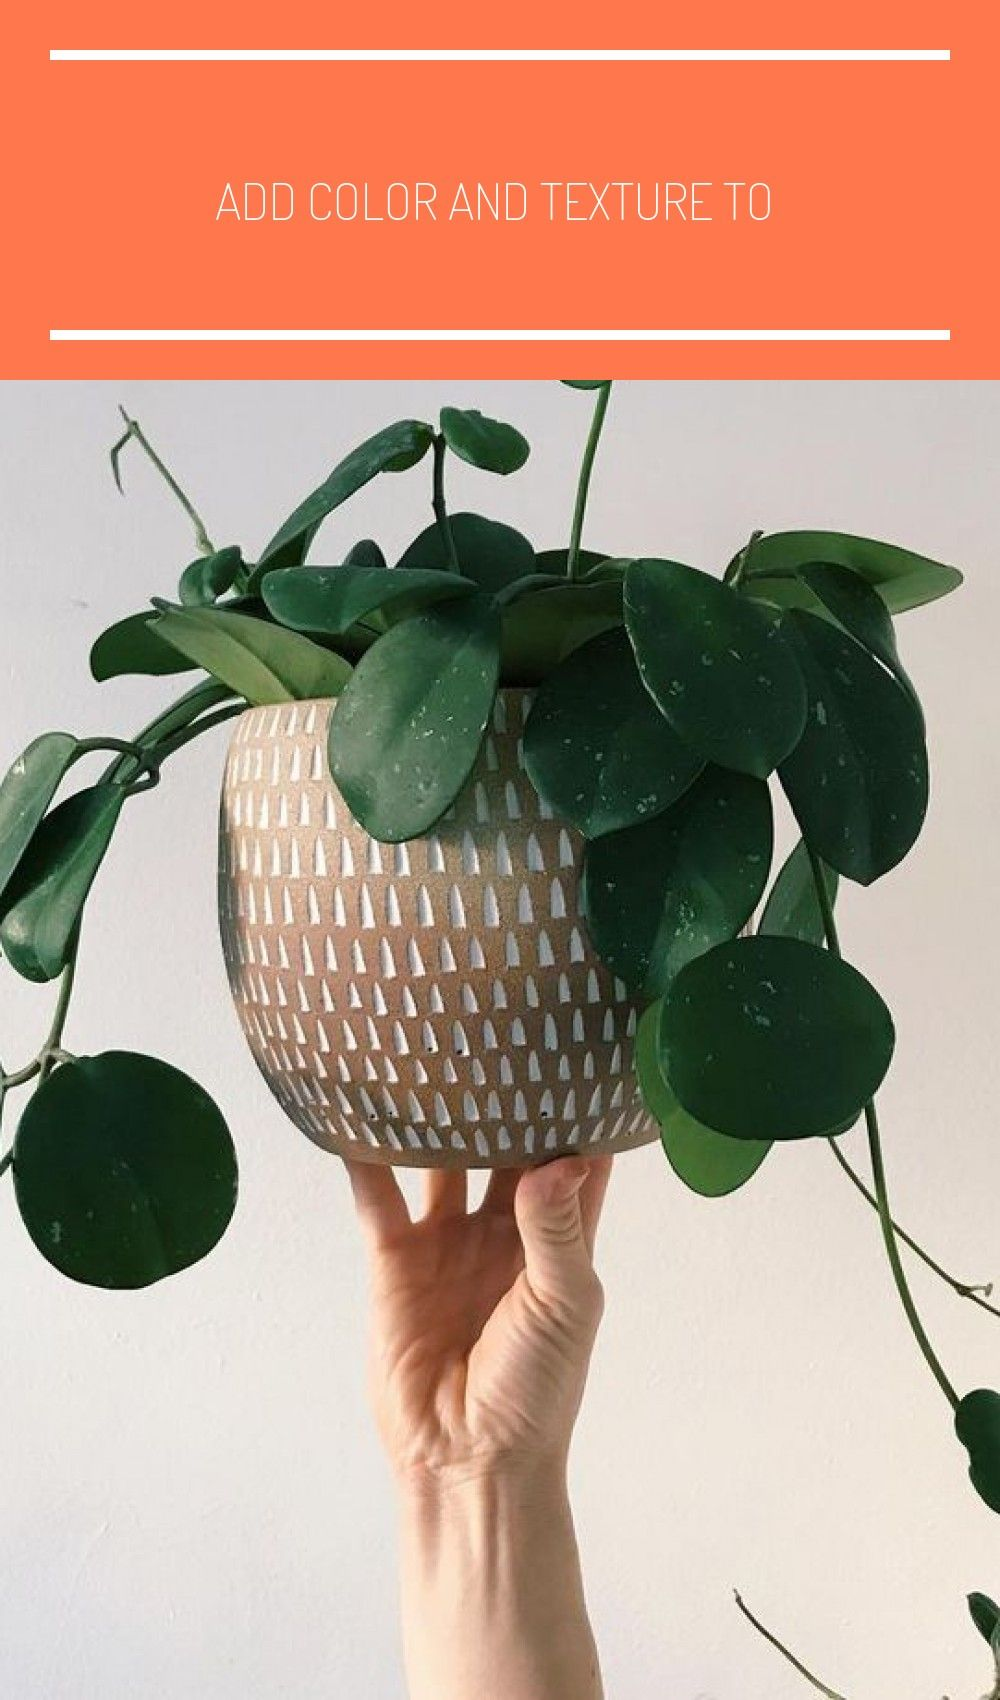 Add color and texture to your small space with living plants #xtraroom #smallspa #cactus plants houseplant